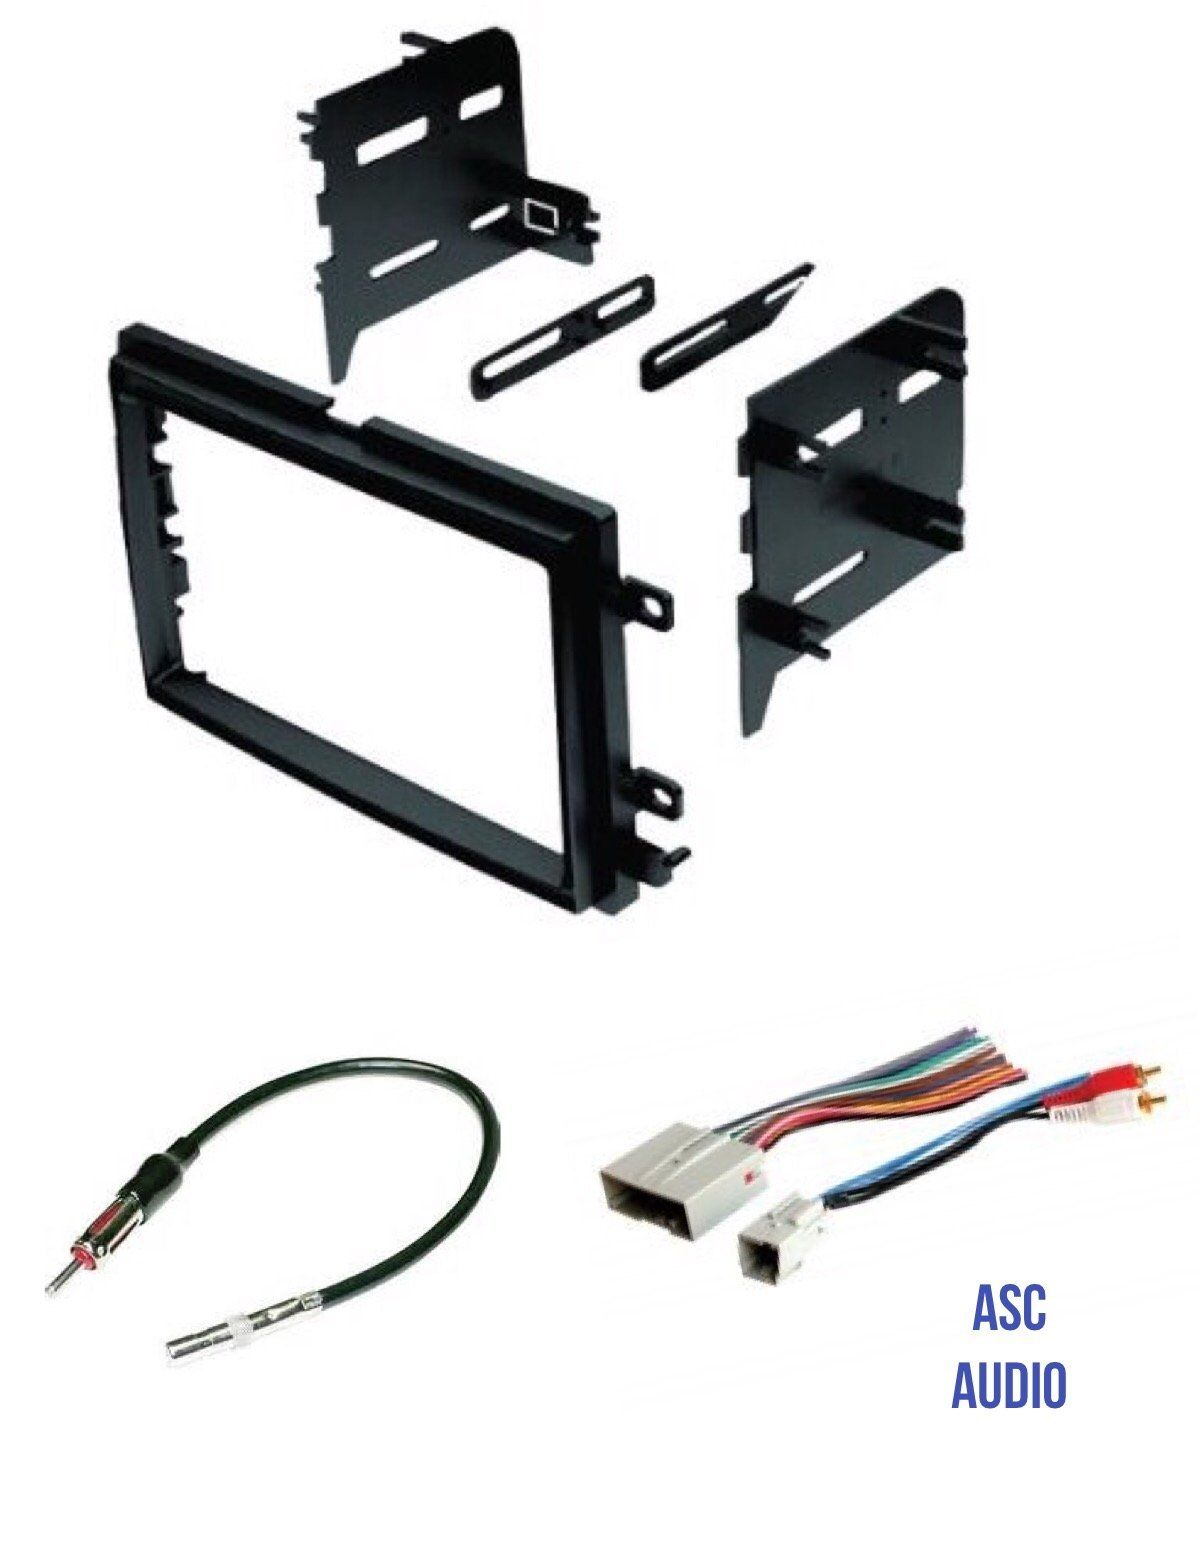 small resolution of asc audio car stereo radio install dash kit wire harness and antenna adapter to install a double din radio for some ford lincoln mercury vehicles